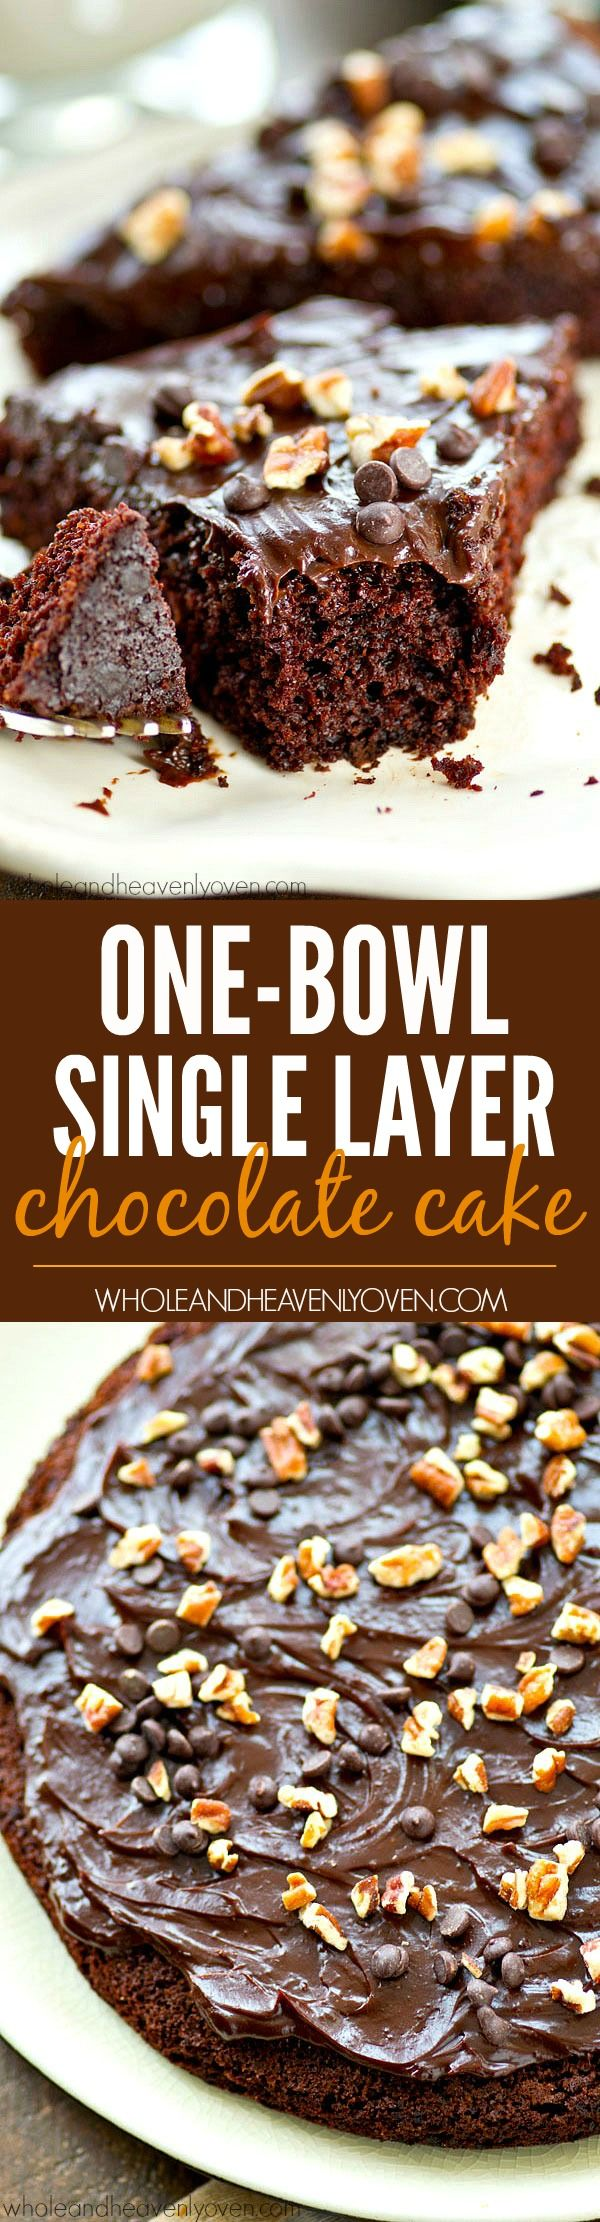 Got a chocolate craving? Fix it the easy way with this single-layer, super-moist chocolate cake that mixes up in one bowl in only a few minutes.---Chocolate cake without all the fuss!